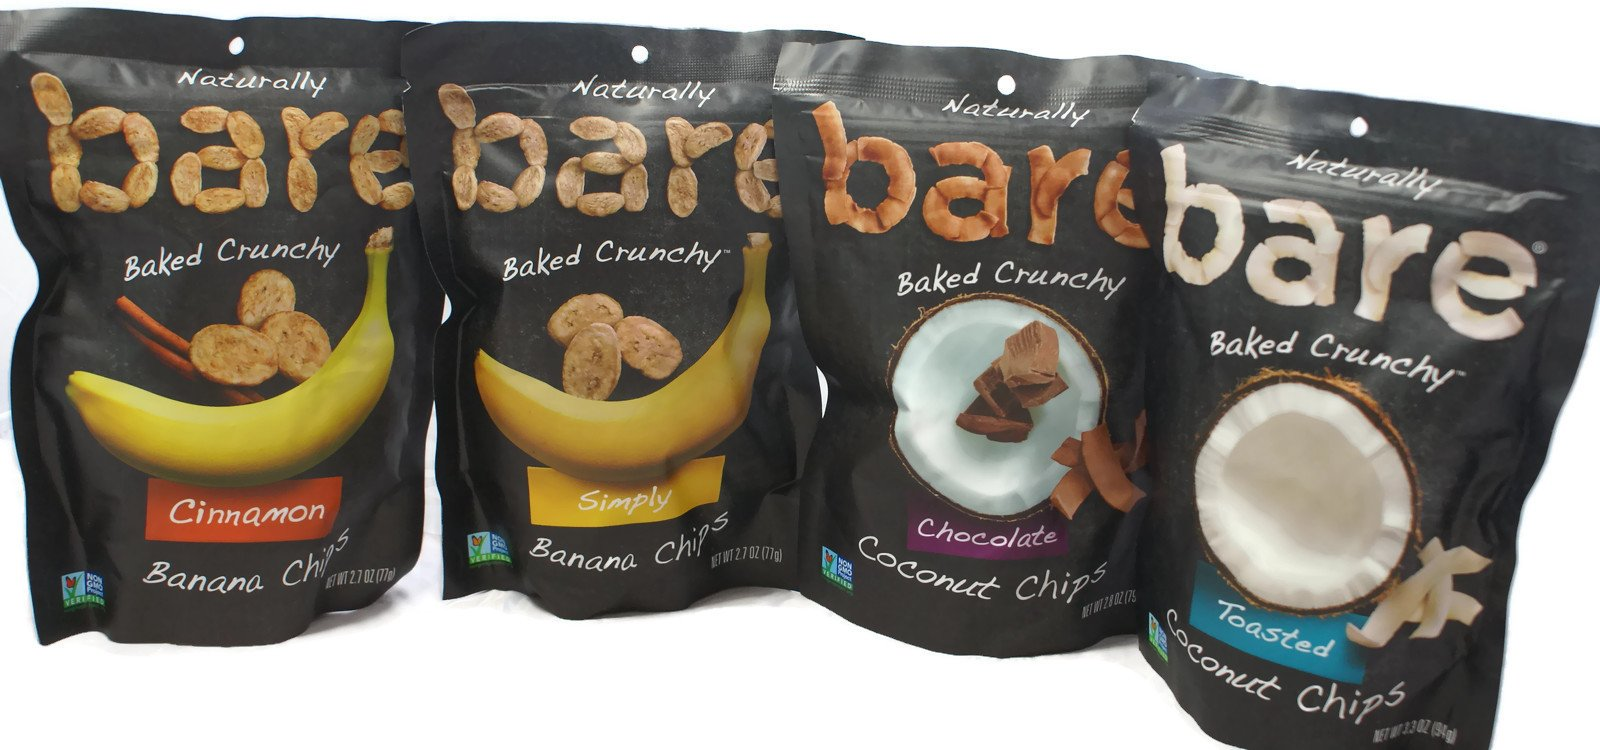 Variety Pack - Bare Fruit Chips - Toasted Coconut (3.3 oz), Chocolate Coconut (2.8 oz), Simply Banana (2.7 oz), Cinnamon Banana (2.7 oz) by General (Image #1)